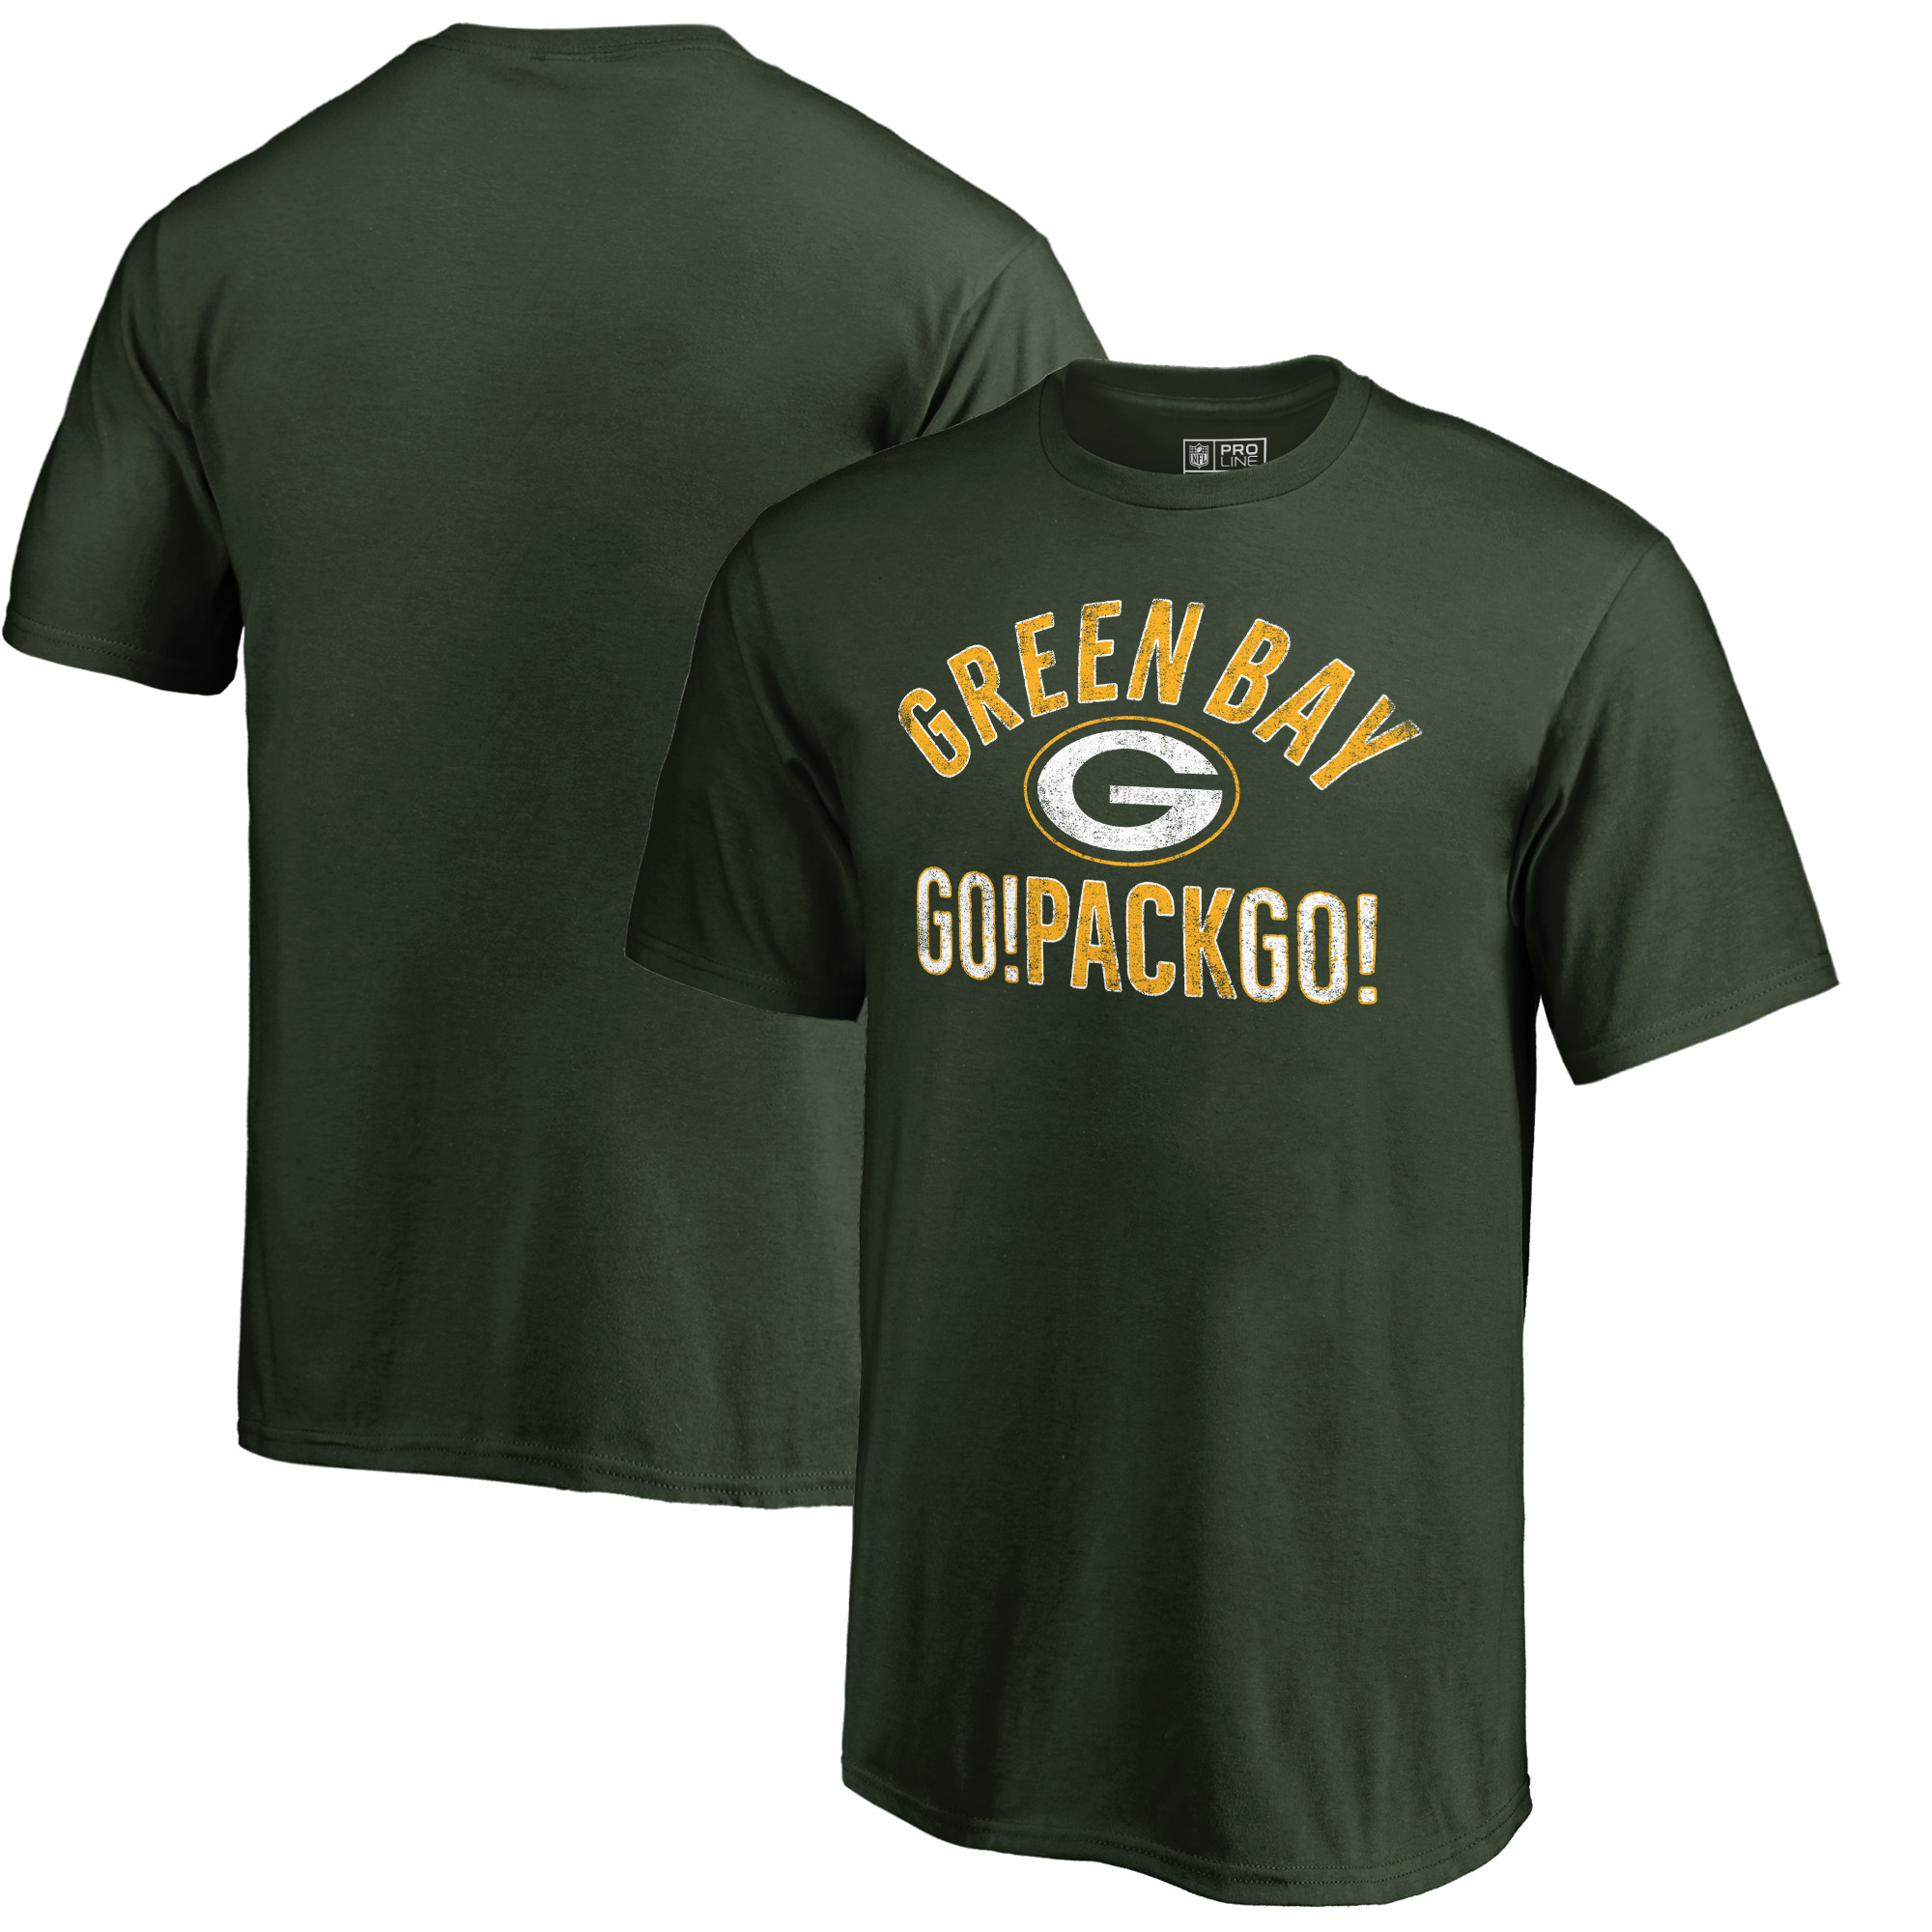 Green Bay Packers NFL Pro Line by Fanatics Branded Youth Hometown Collection T-Shirt - Green